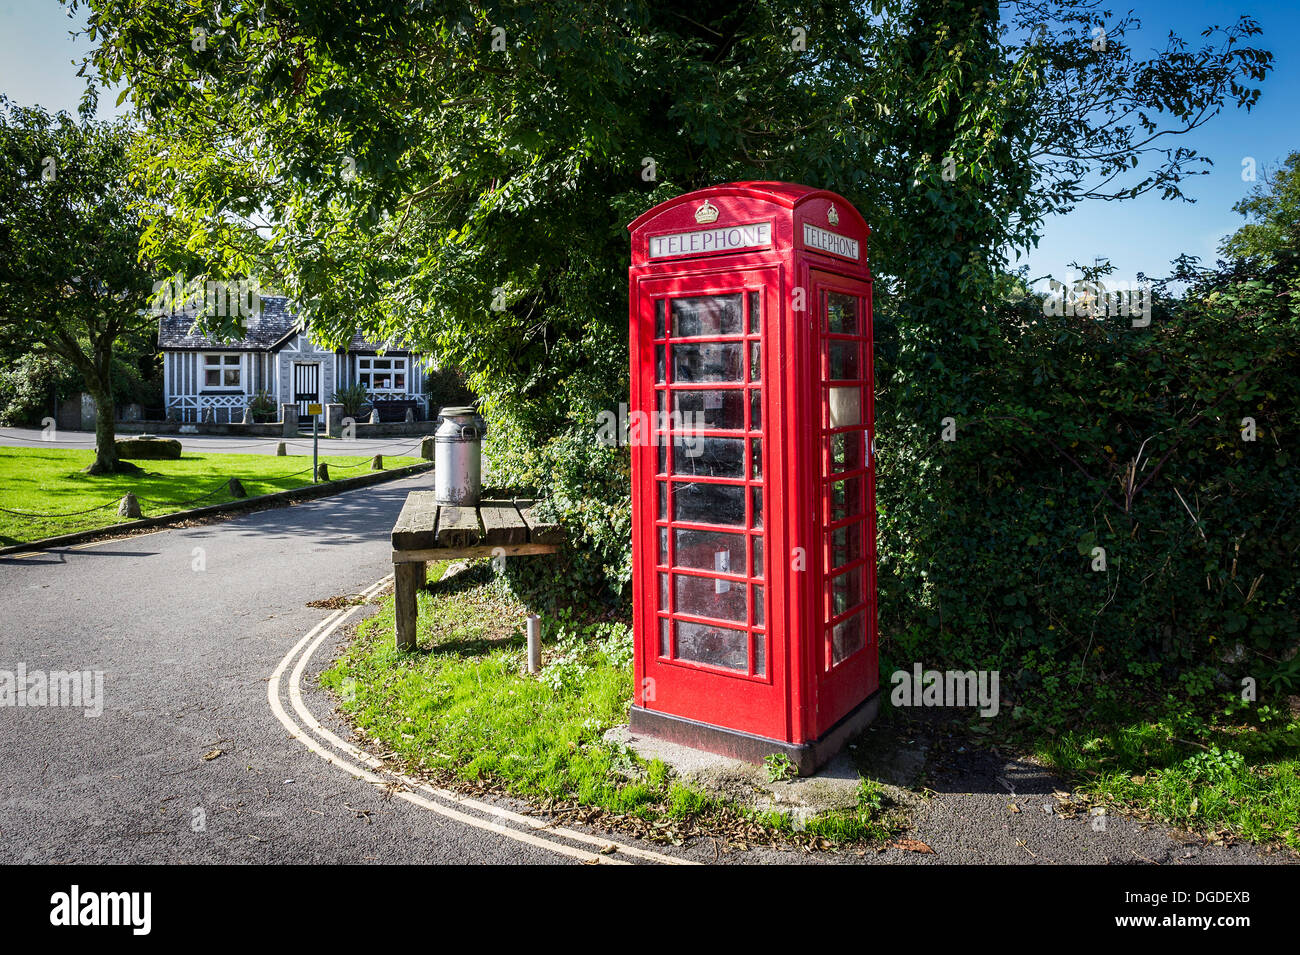 A traditional red telephone box on the village square in Crantock Village in Newquay Cornwall. - Stock Image